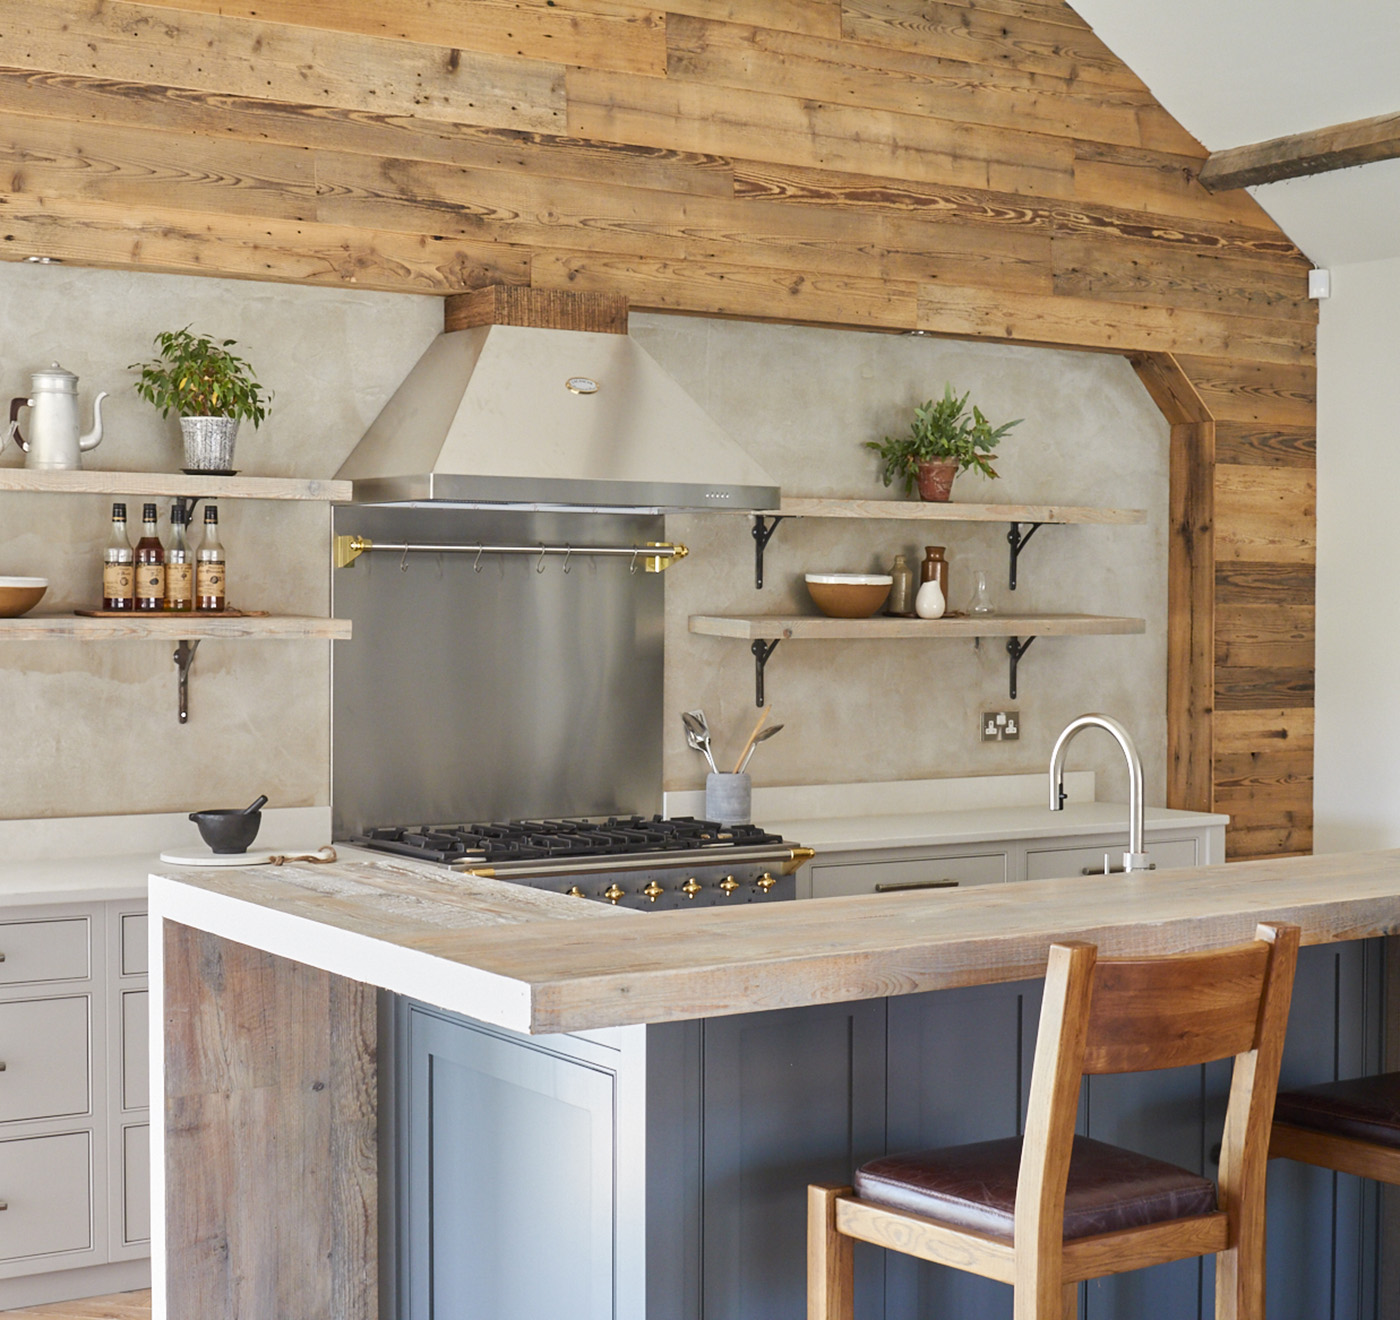 Reclaimed Cladding behind grey island and stainless steel Lacanche range cooker